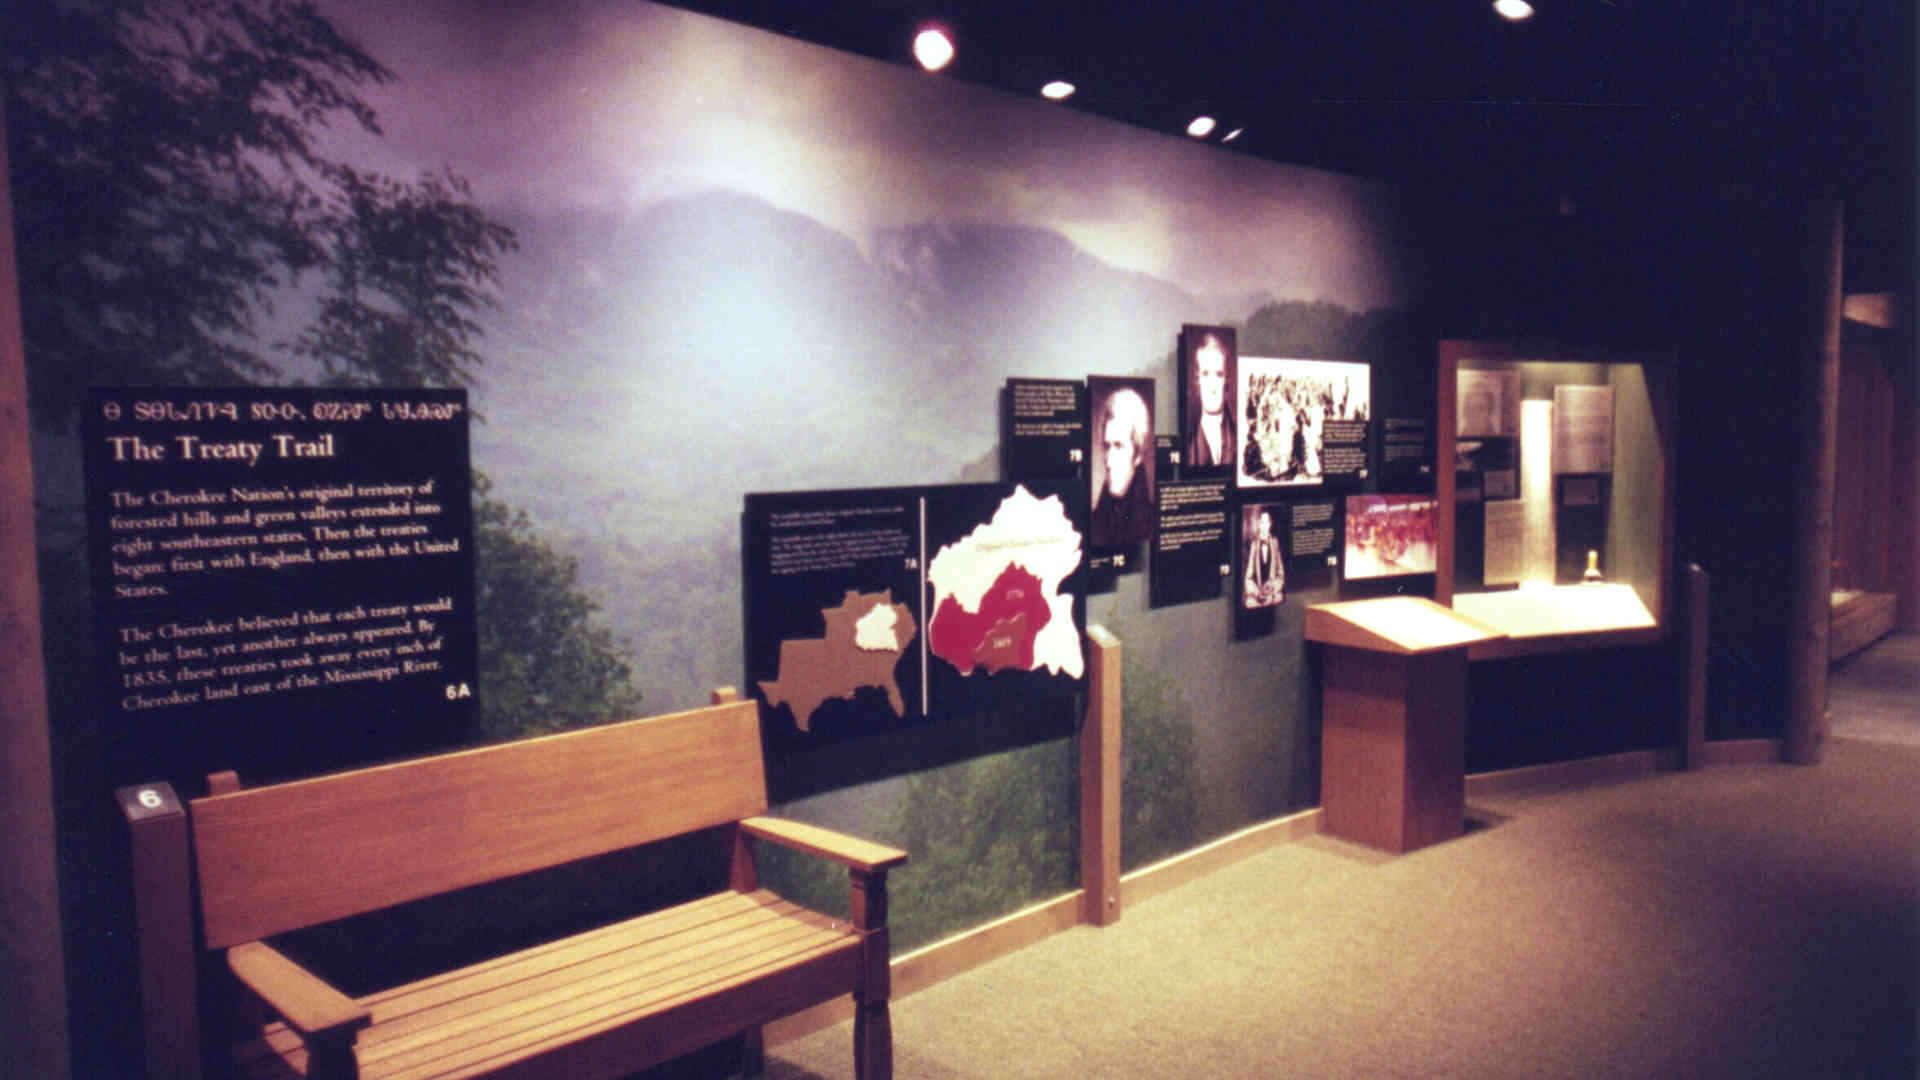 trail of tears museum exhibit graphics